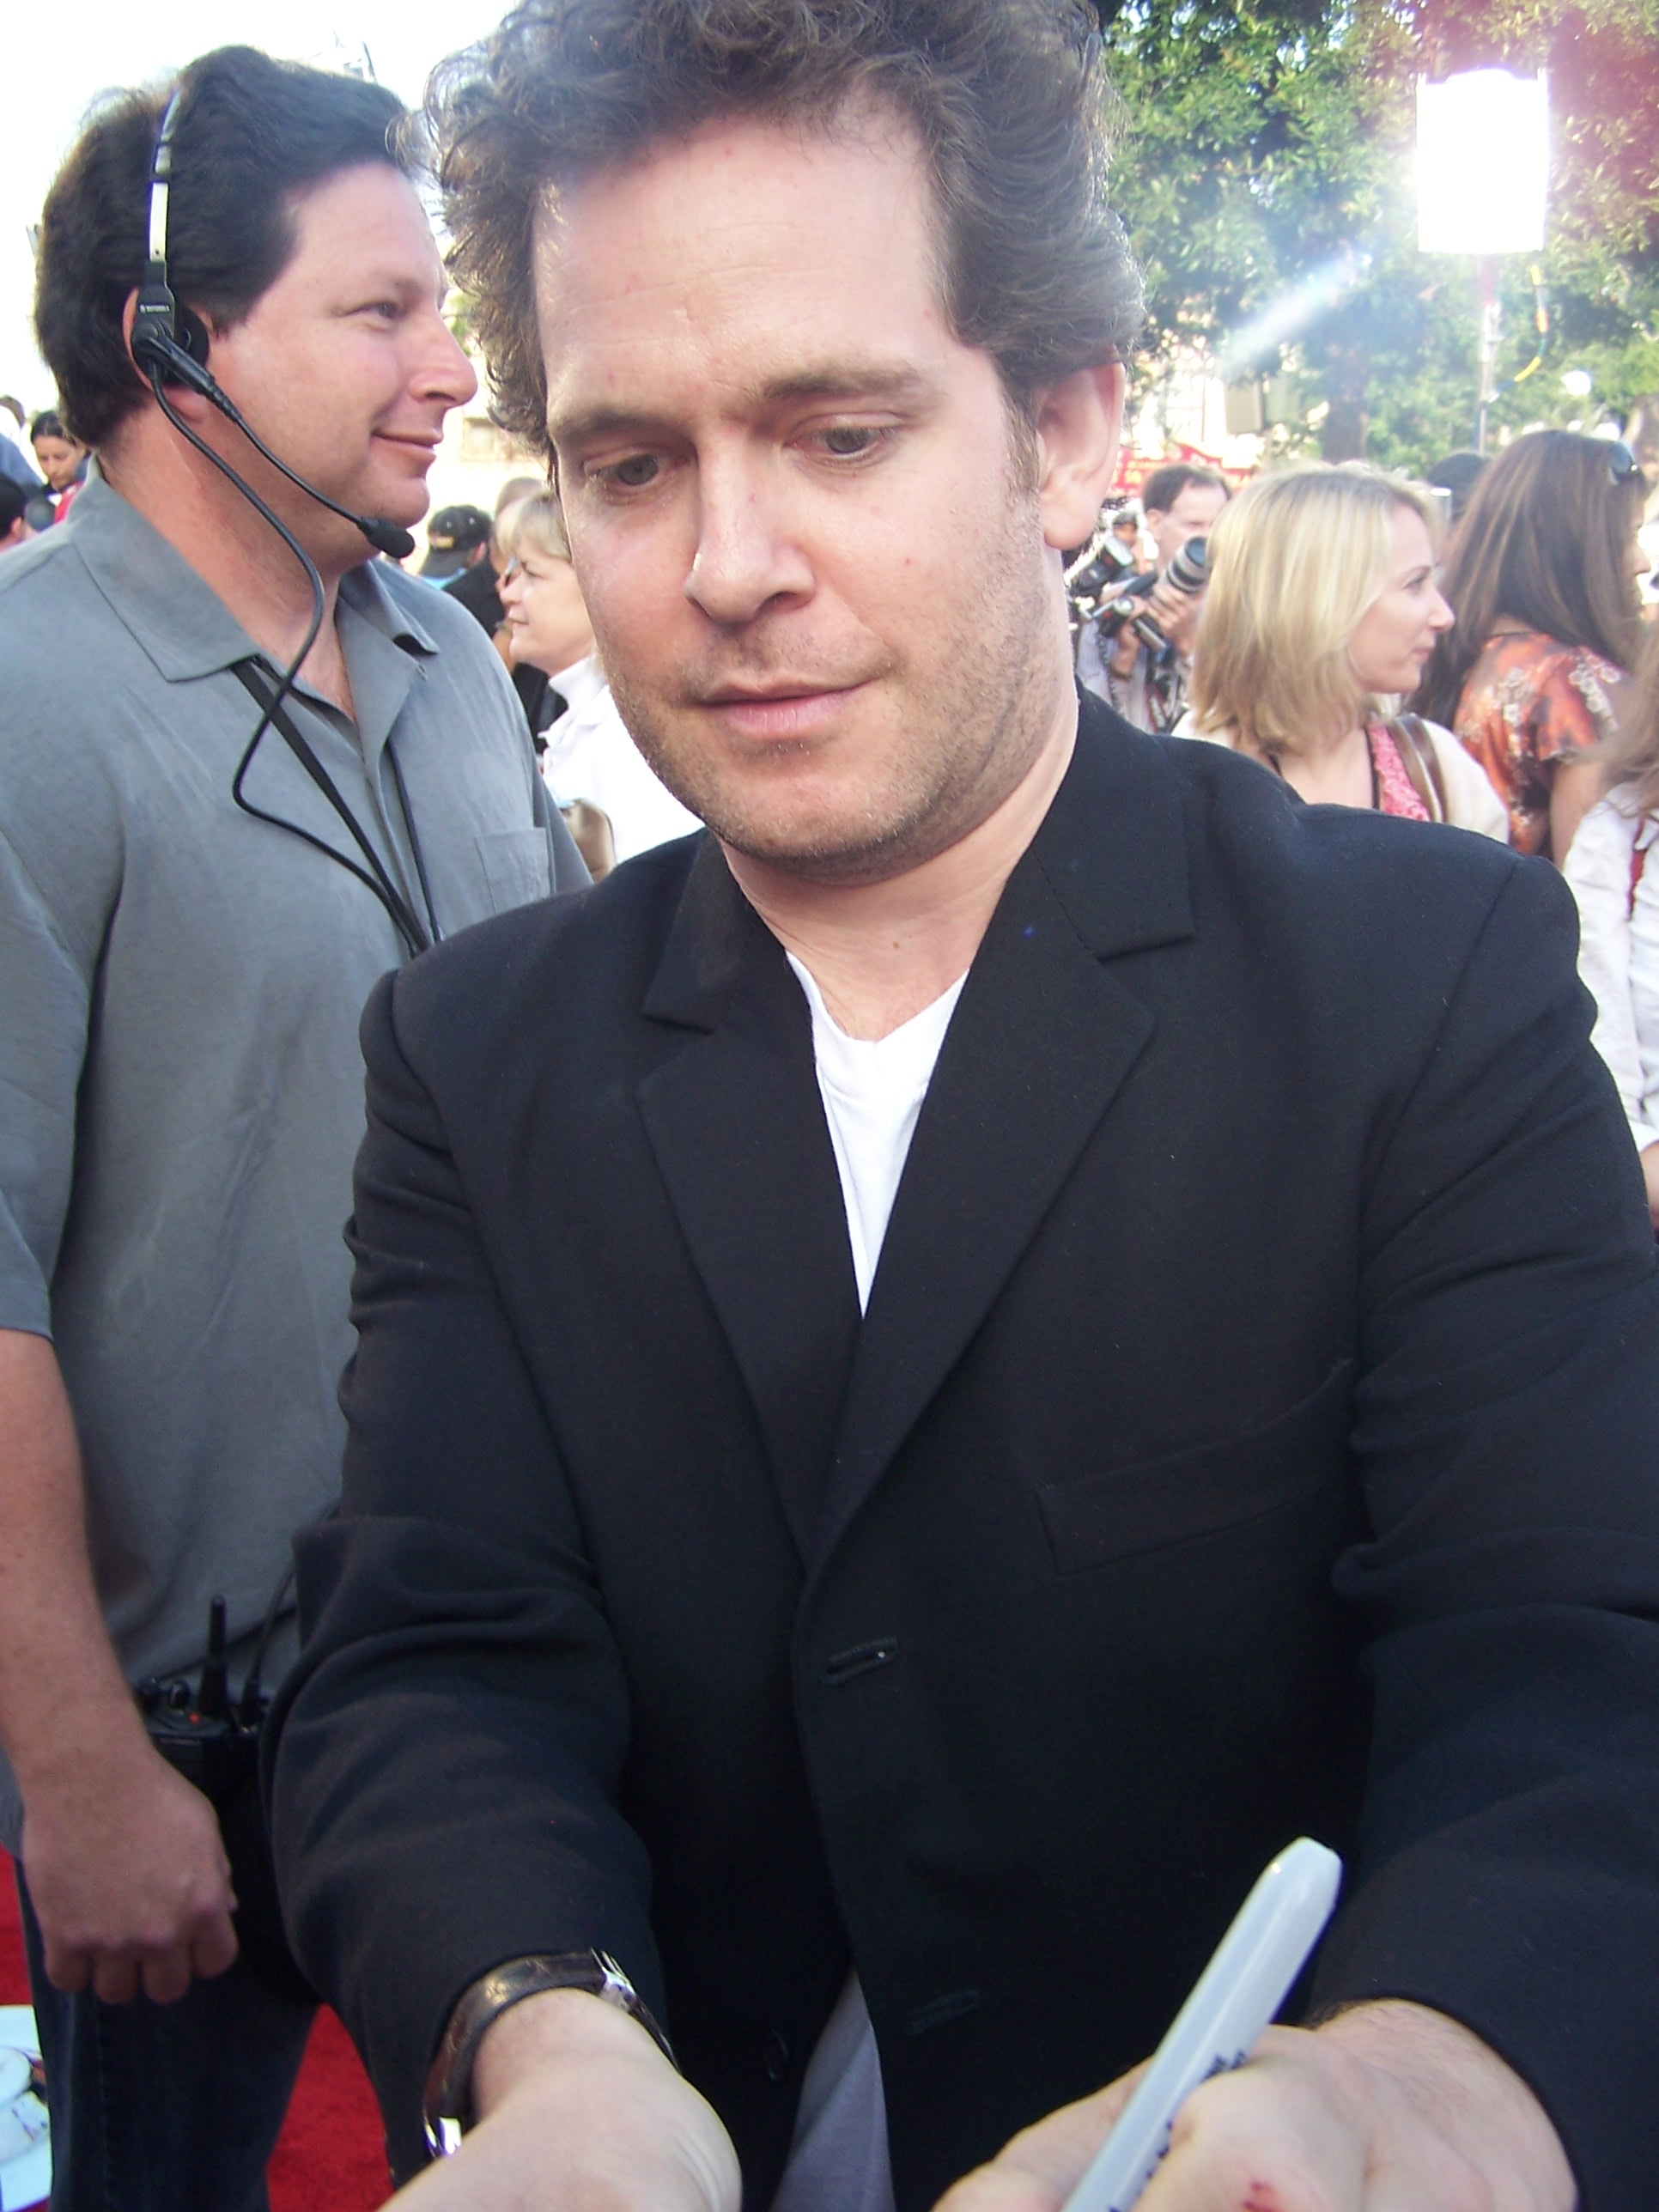 Tom Hollander (born 1967)